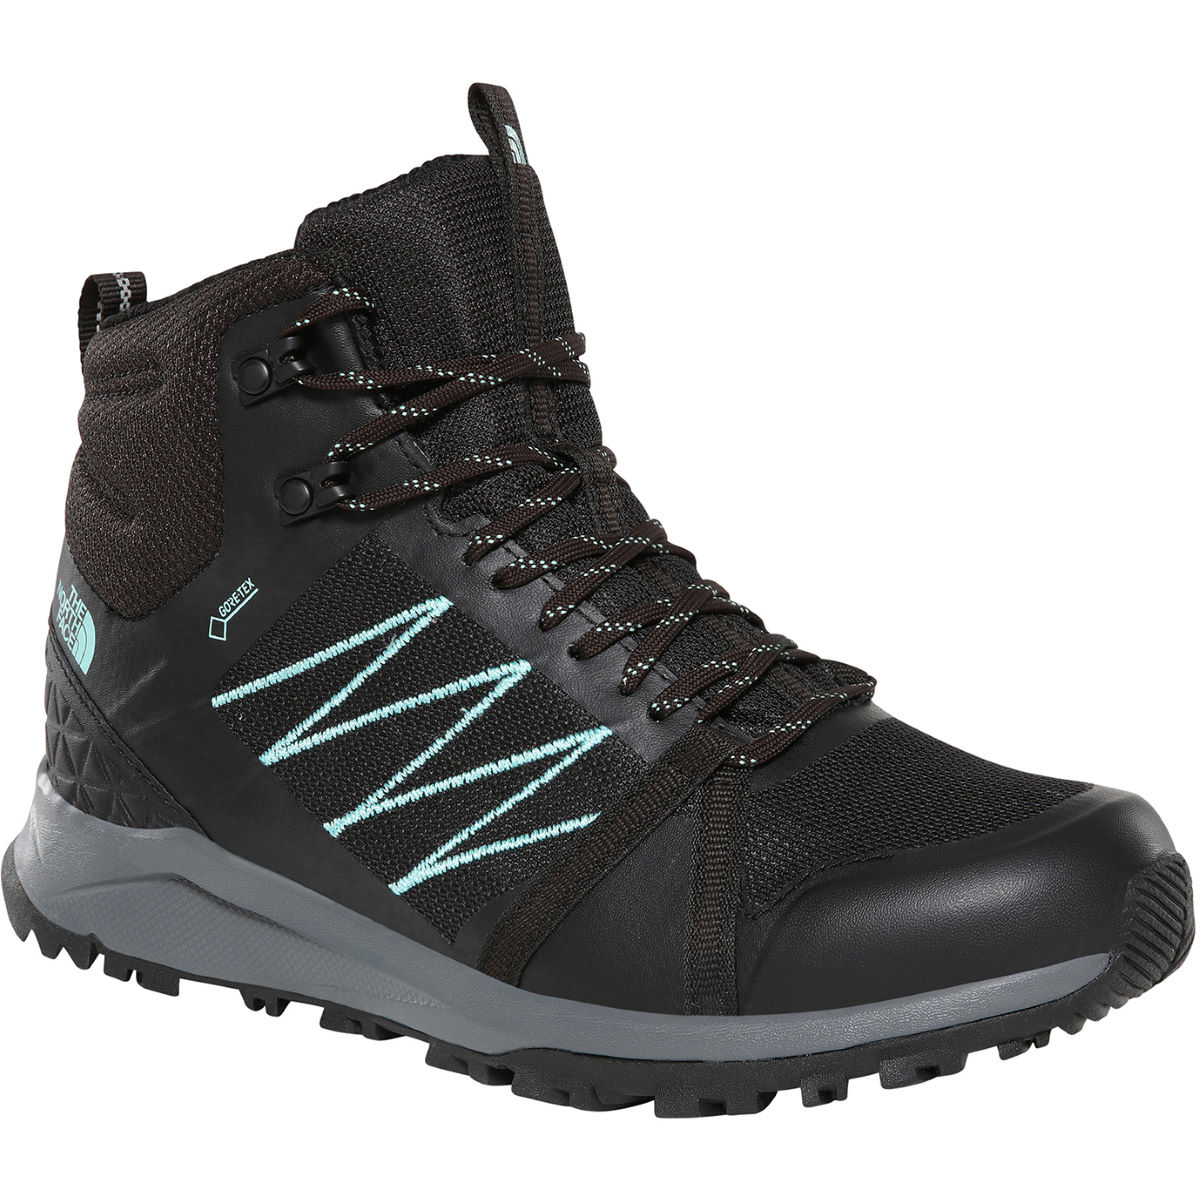 The North Face The North Face Women's Litewave Fastpack Mid GORE-TEX® Shoes   Boots